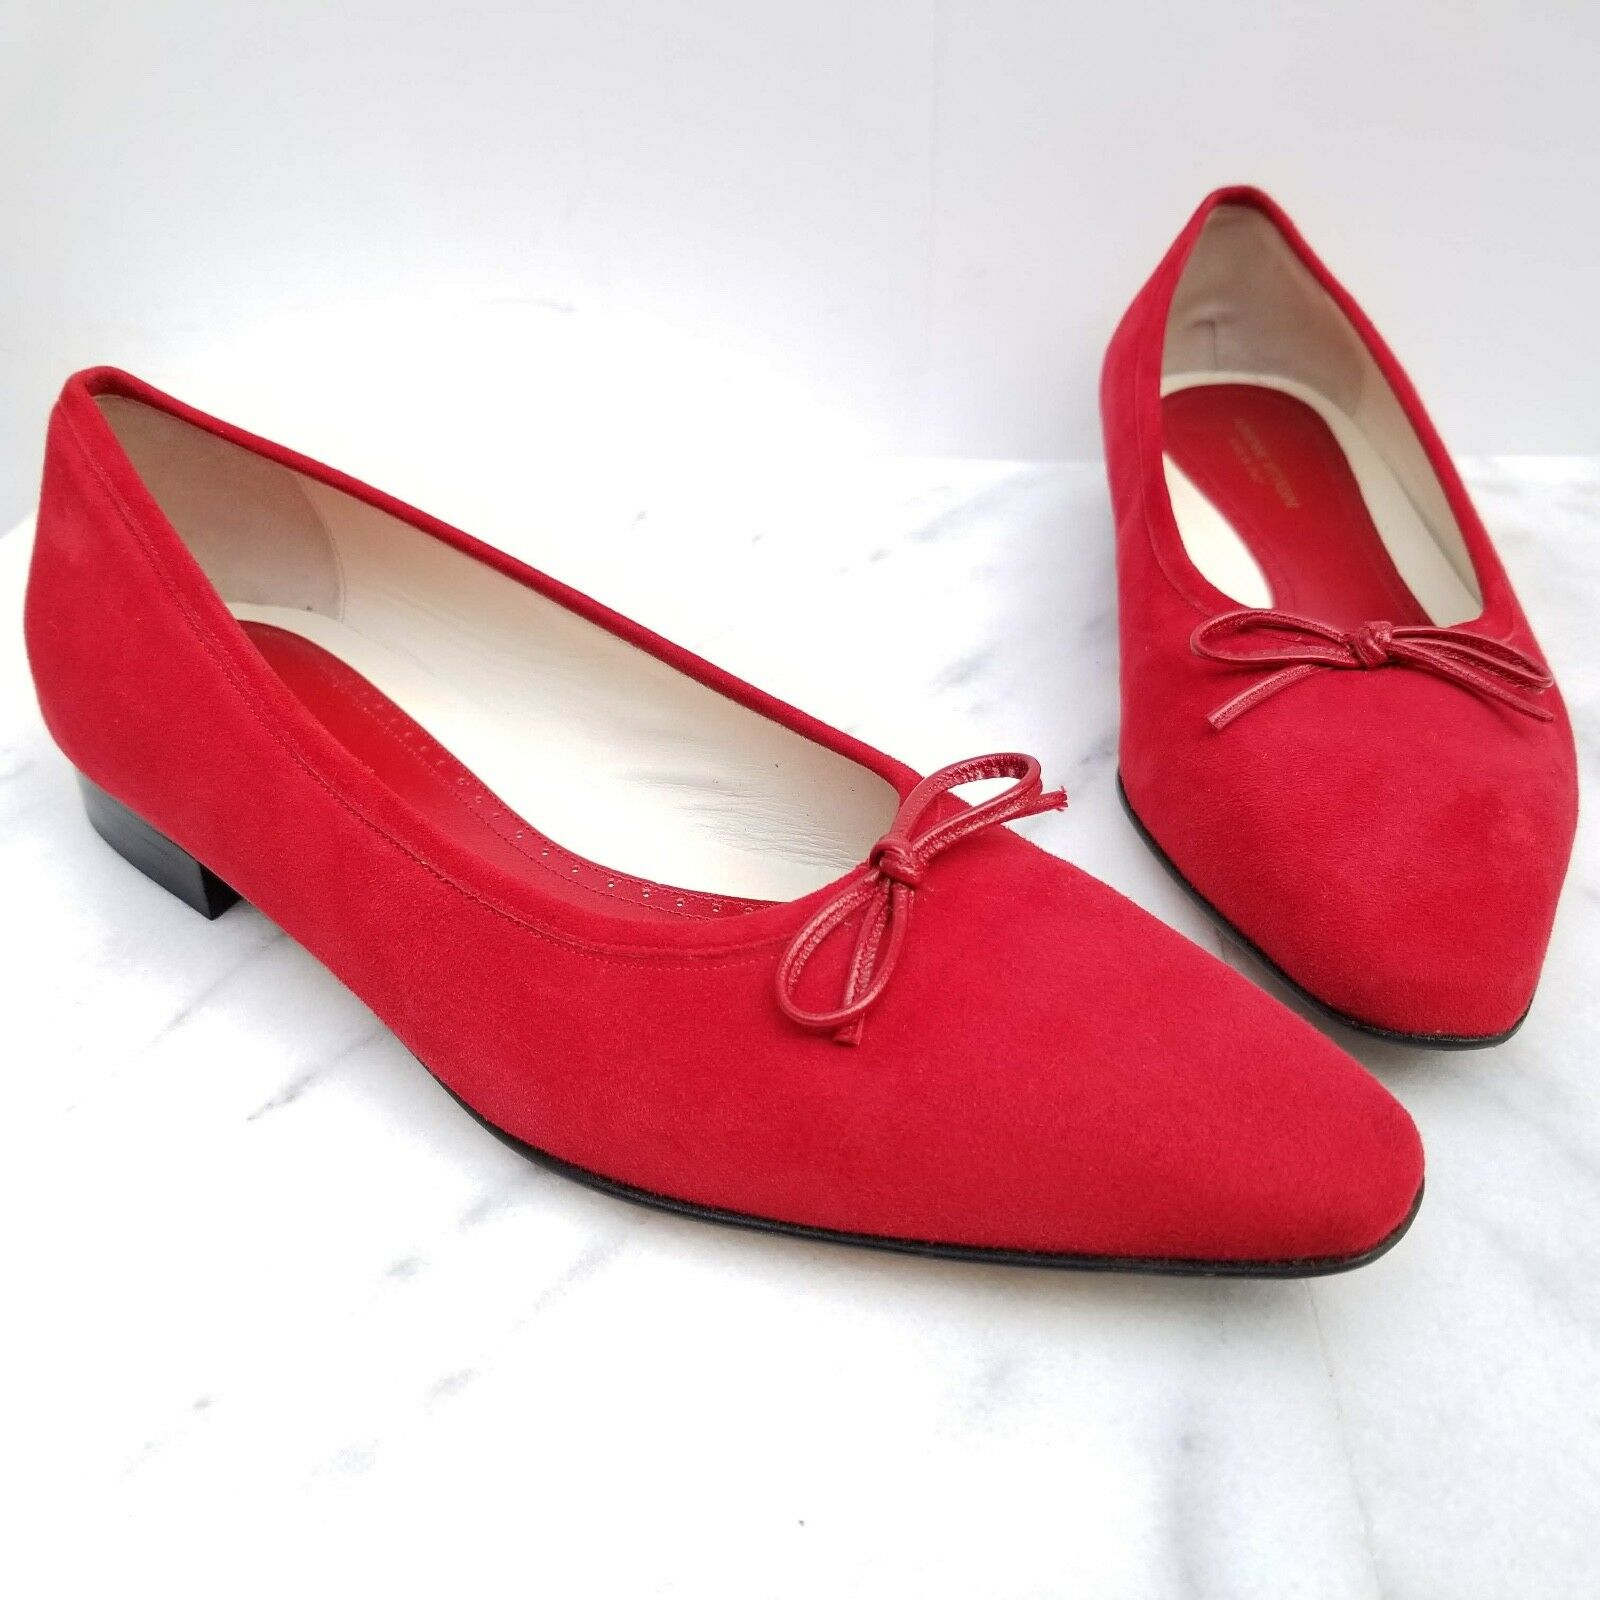 ADRIENNE VITTADINI  Red Suede Ballet Flat Leather Bow Women's shoes 8.5 M